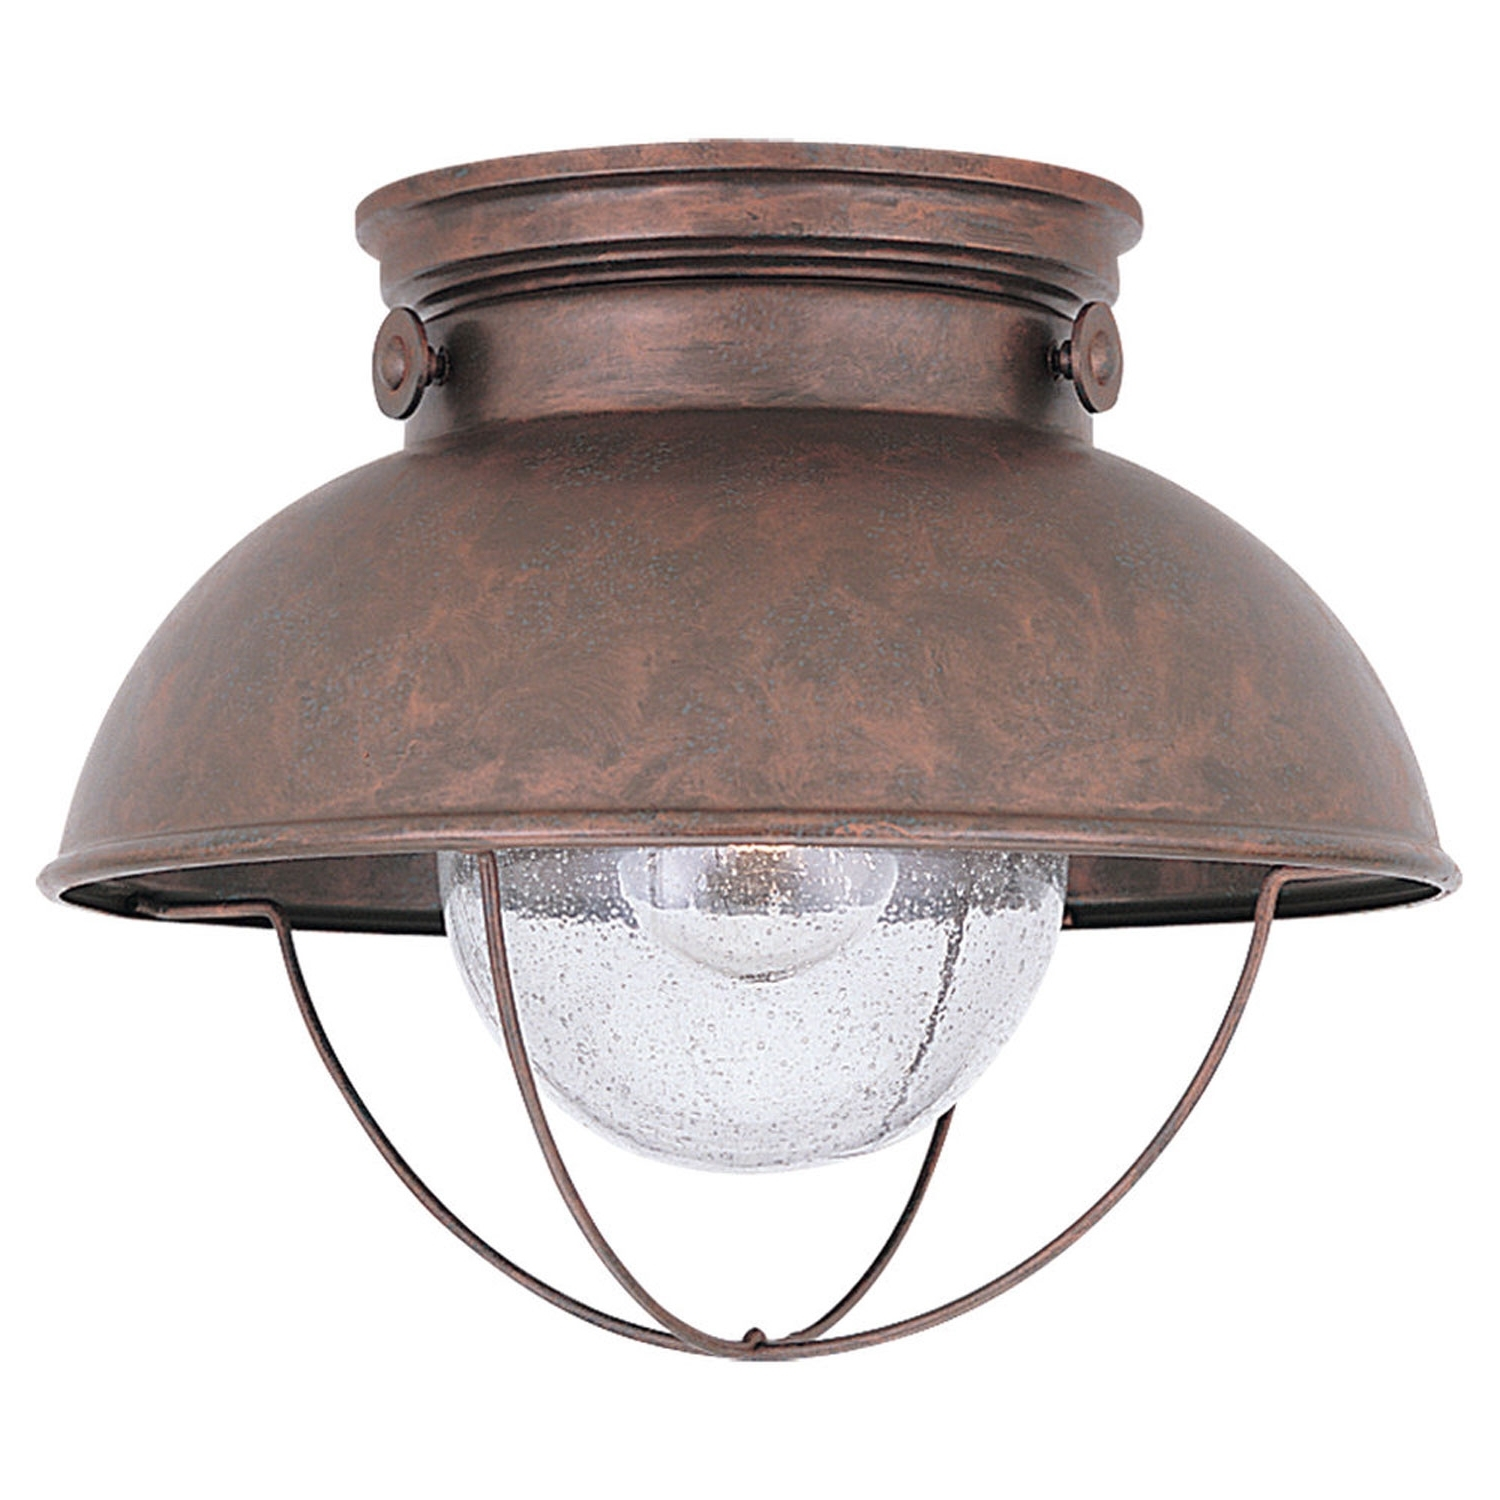 Outdoor Ceiling Lighting (View 17 of 20)